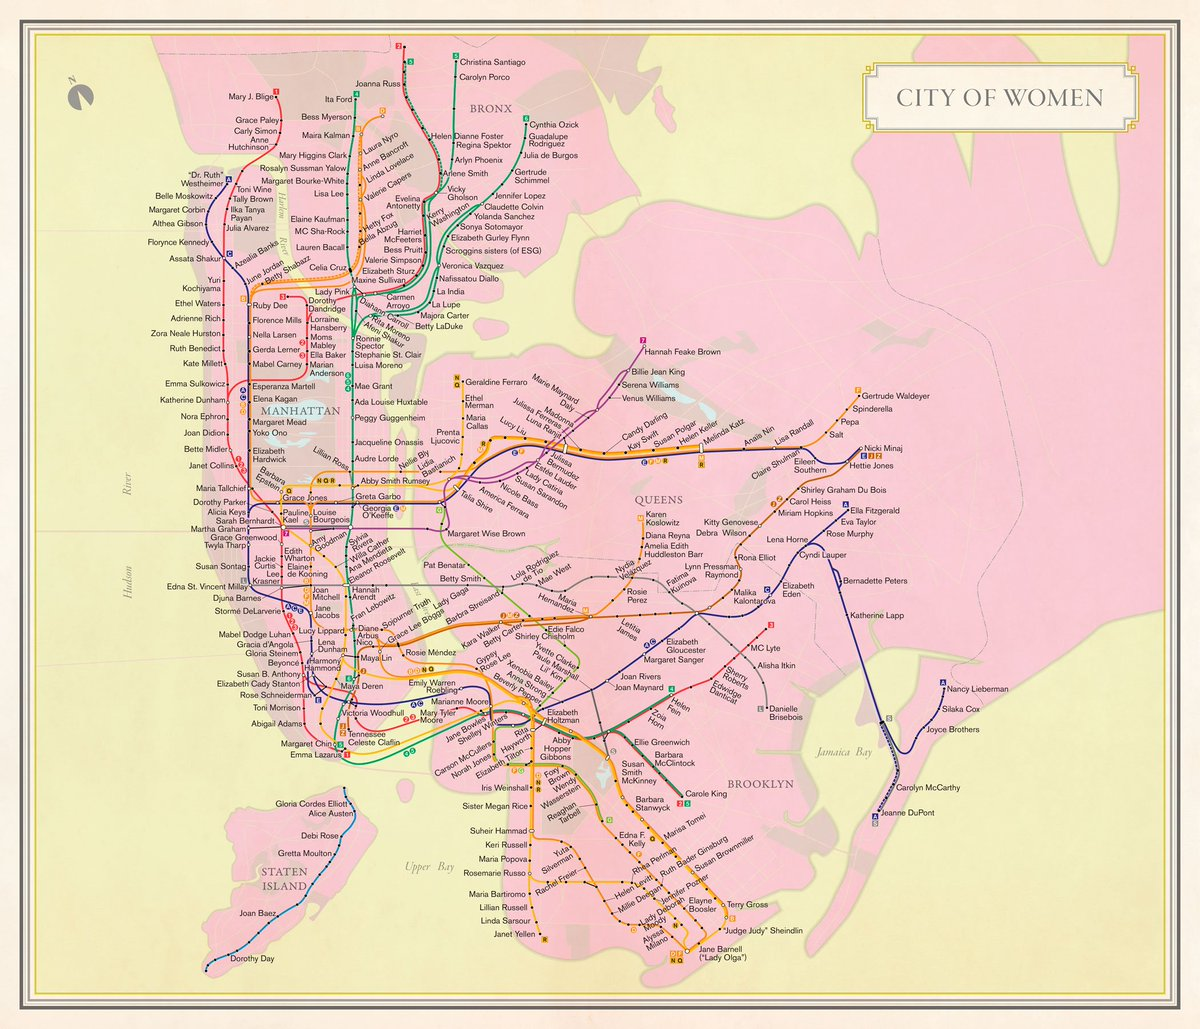 1980 Nyc Subway Map.Ny Transit Museum Nytransitmuseum Twitter